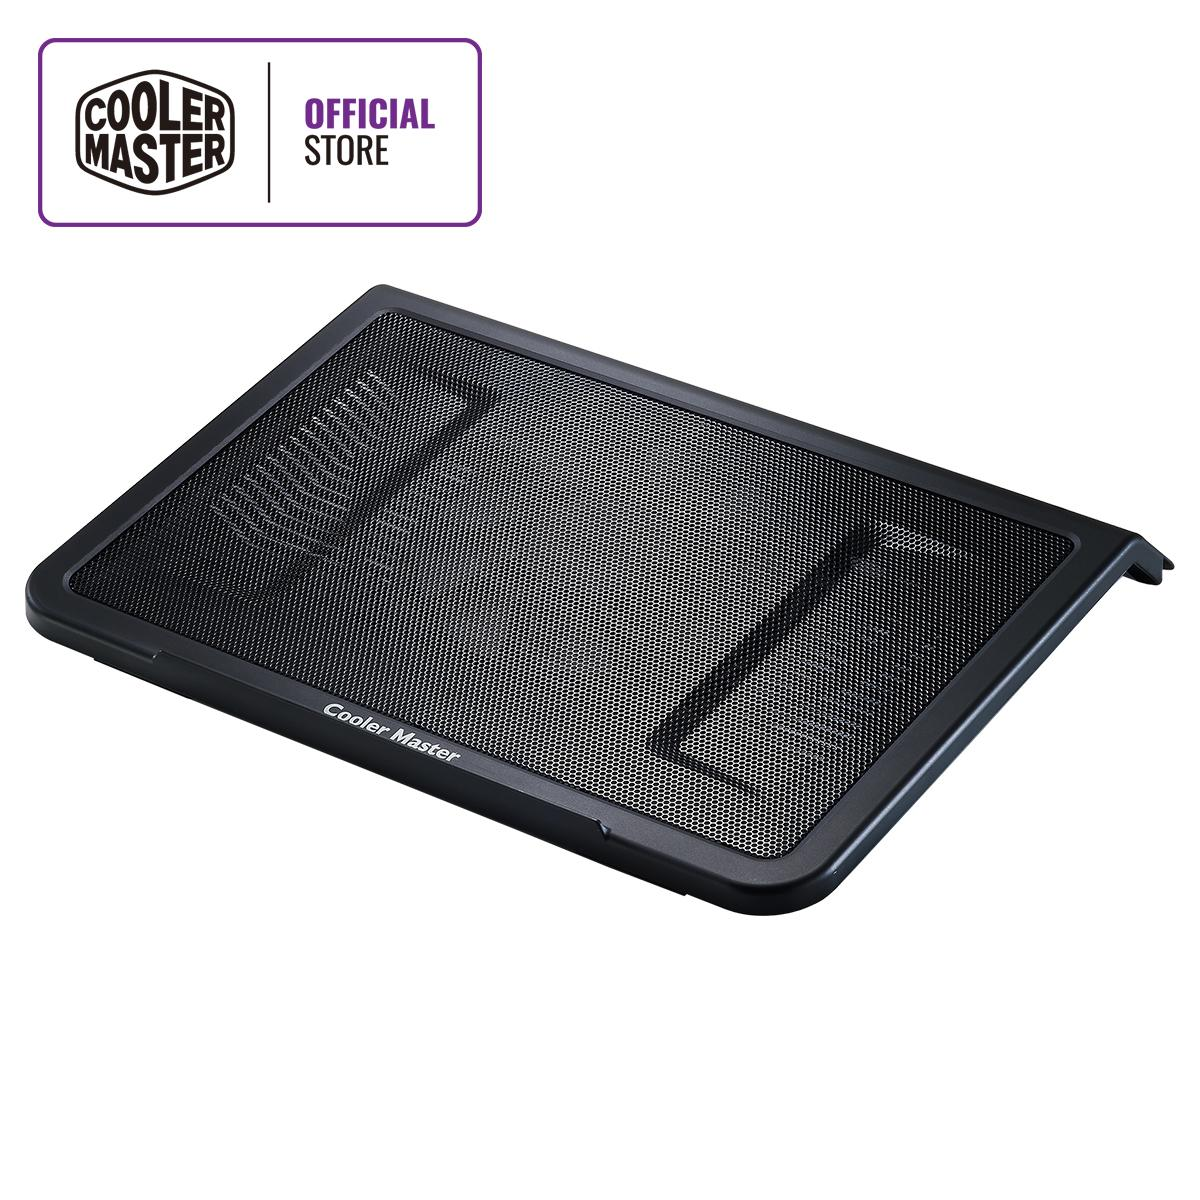 Cooler Master Notepal L1 160mm Fan Notebook Cooler By Cooler Master Official Store.